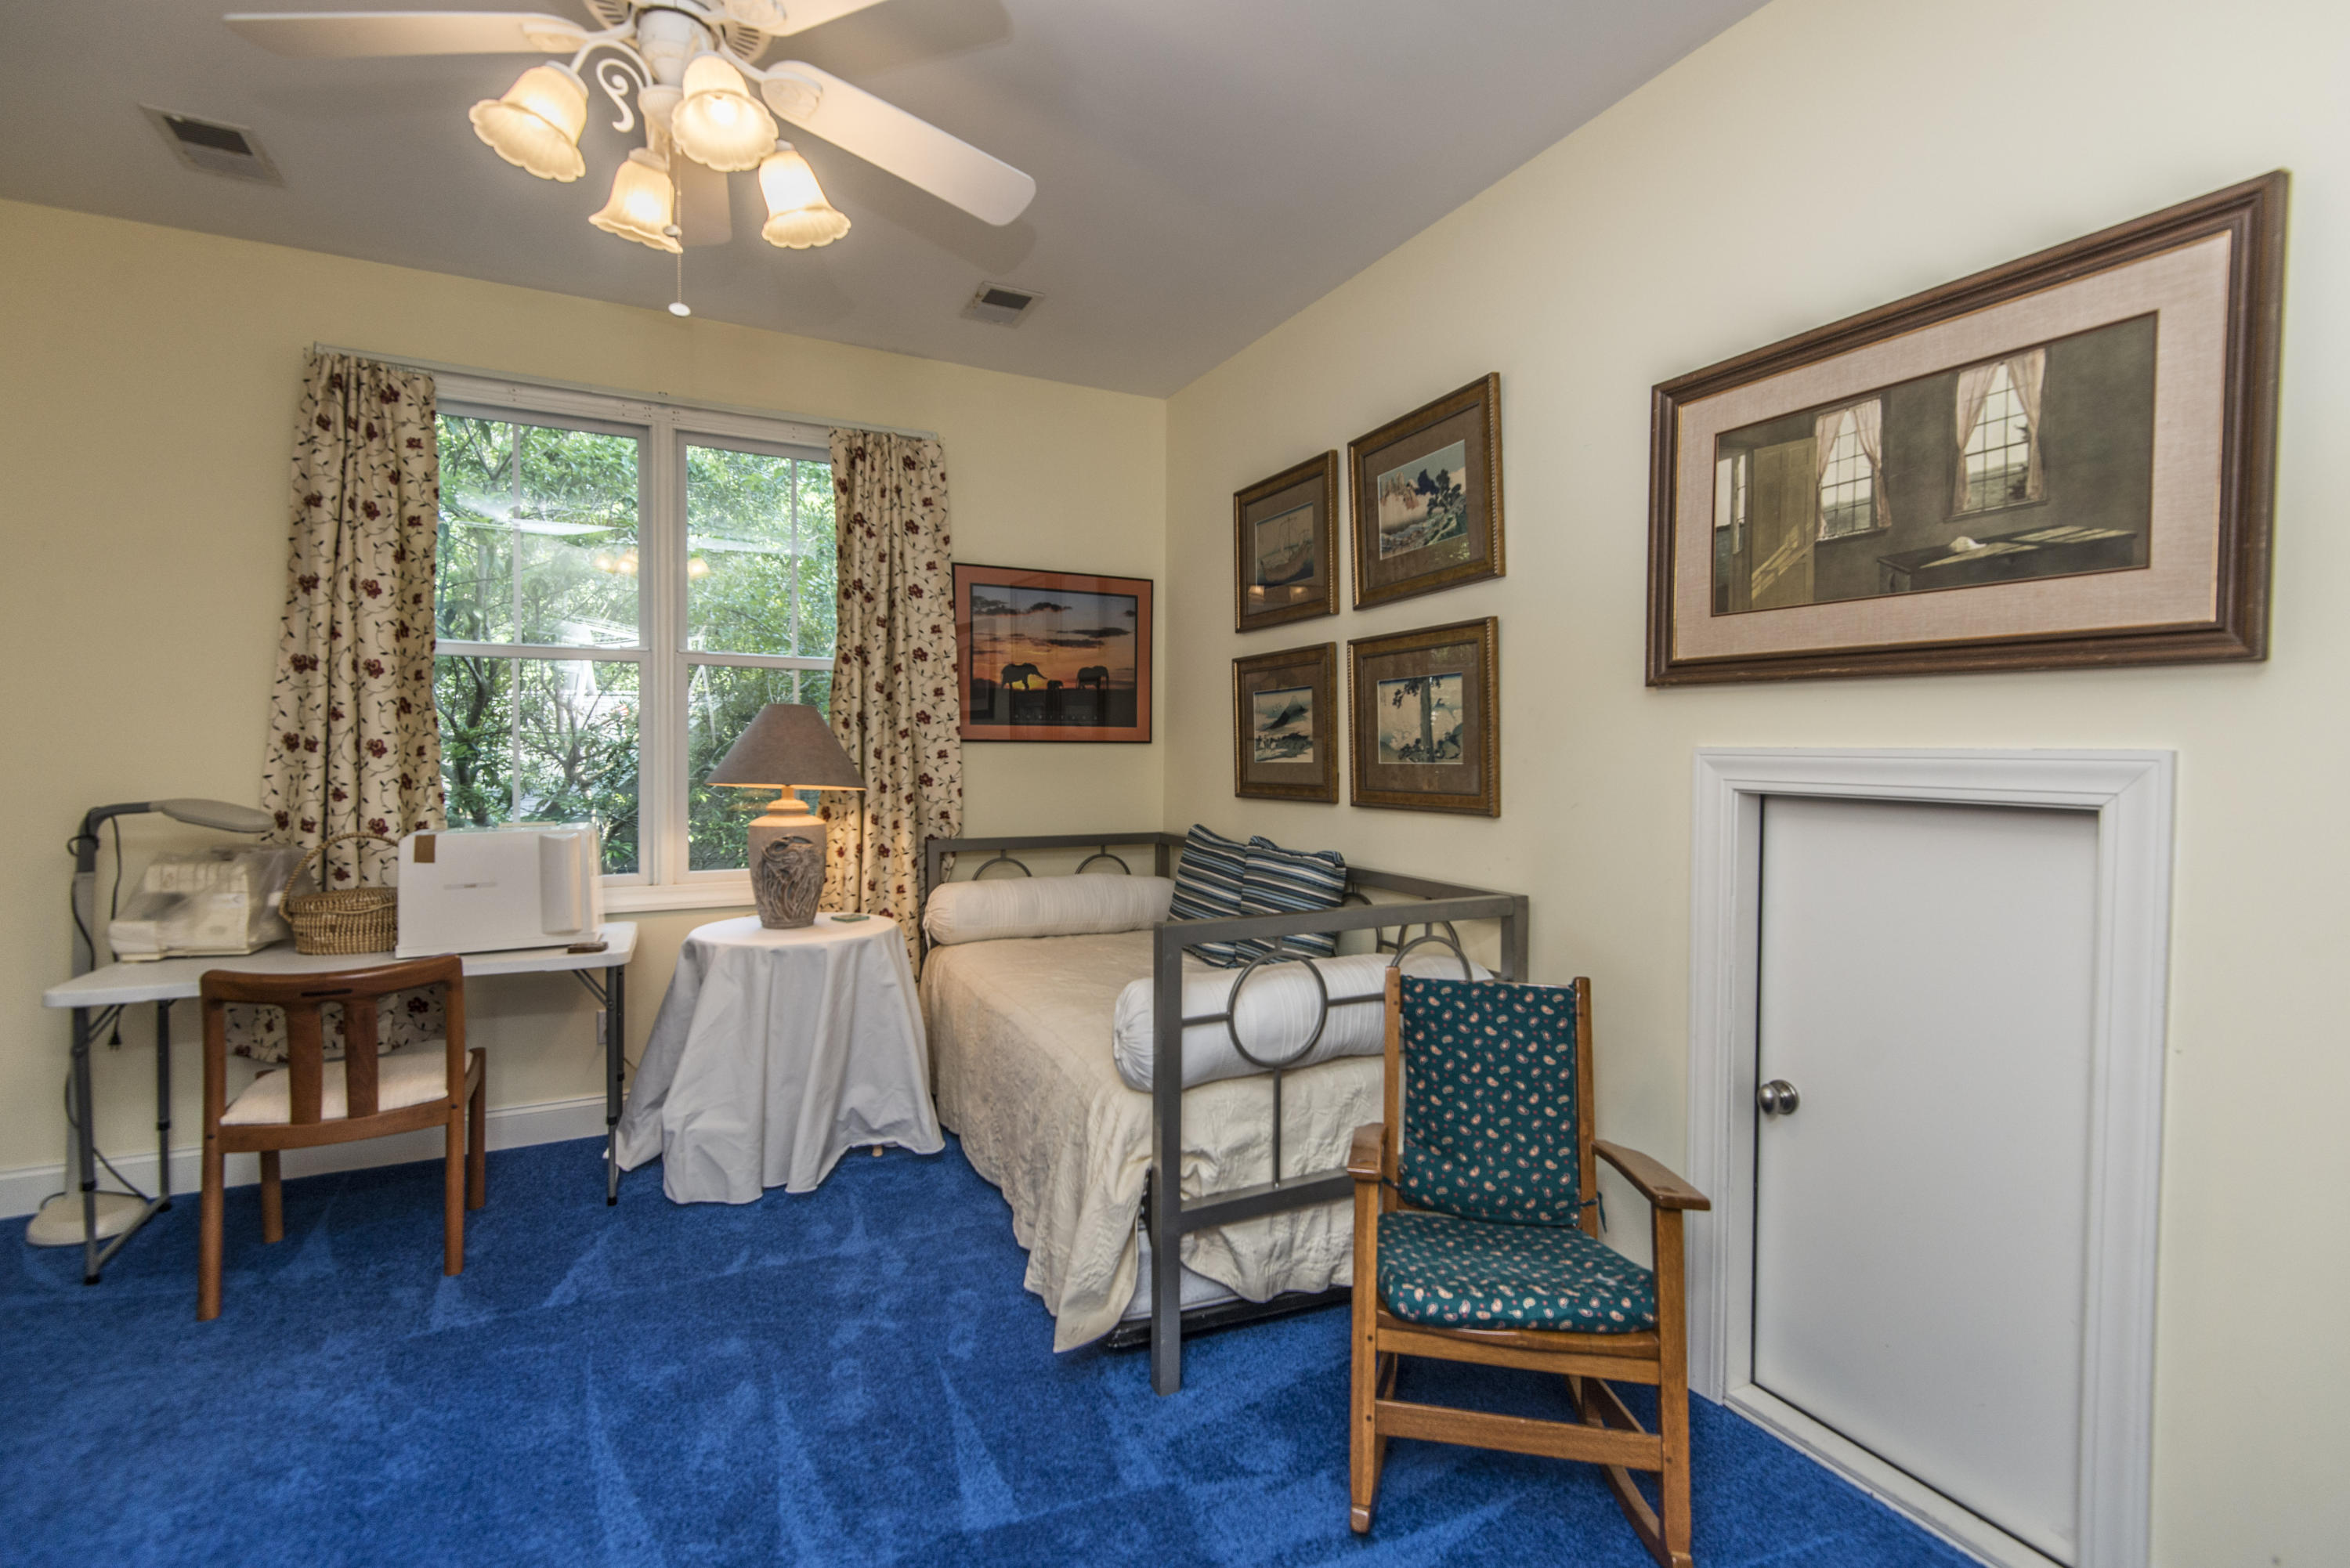 The Villages In St Johns Woods Homes For Sale - 4087 Amy, Johns Island, SC - 47